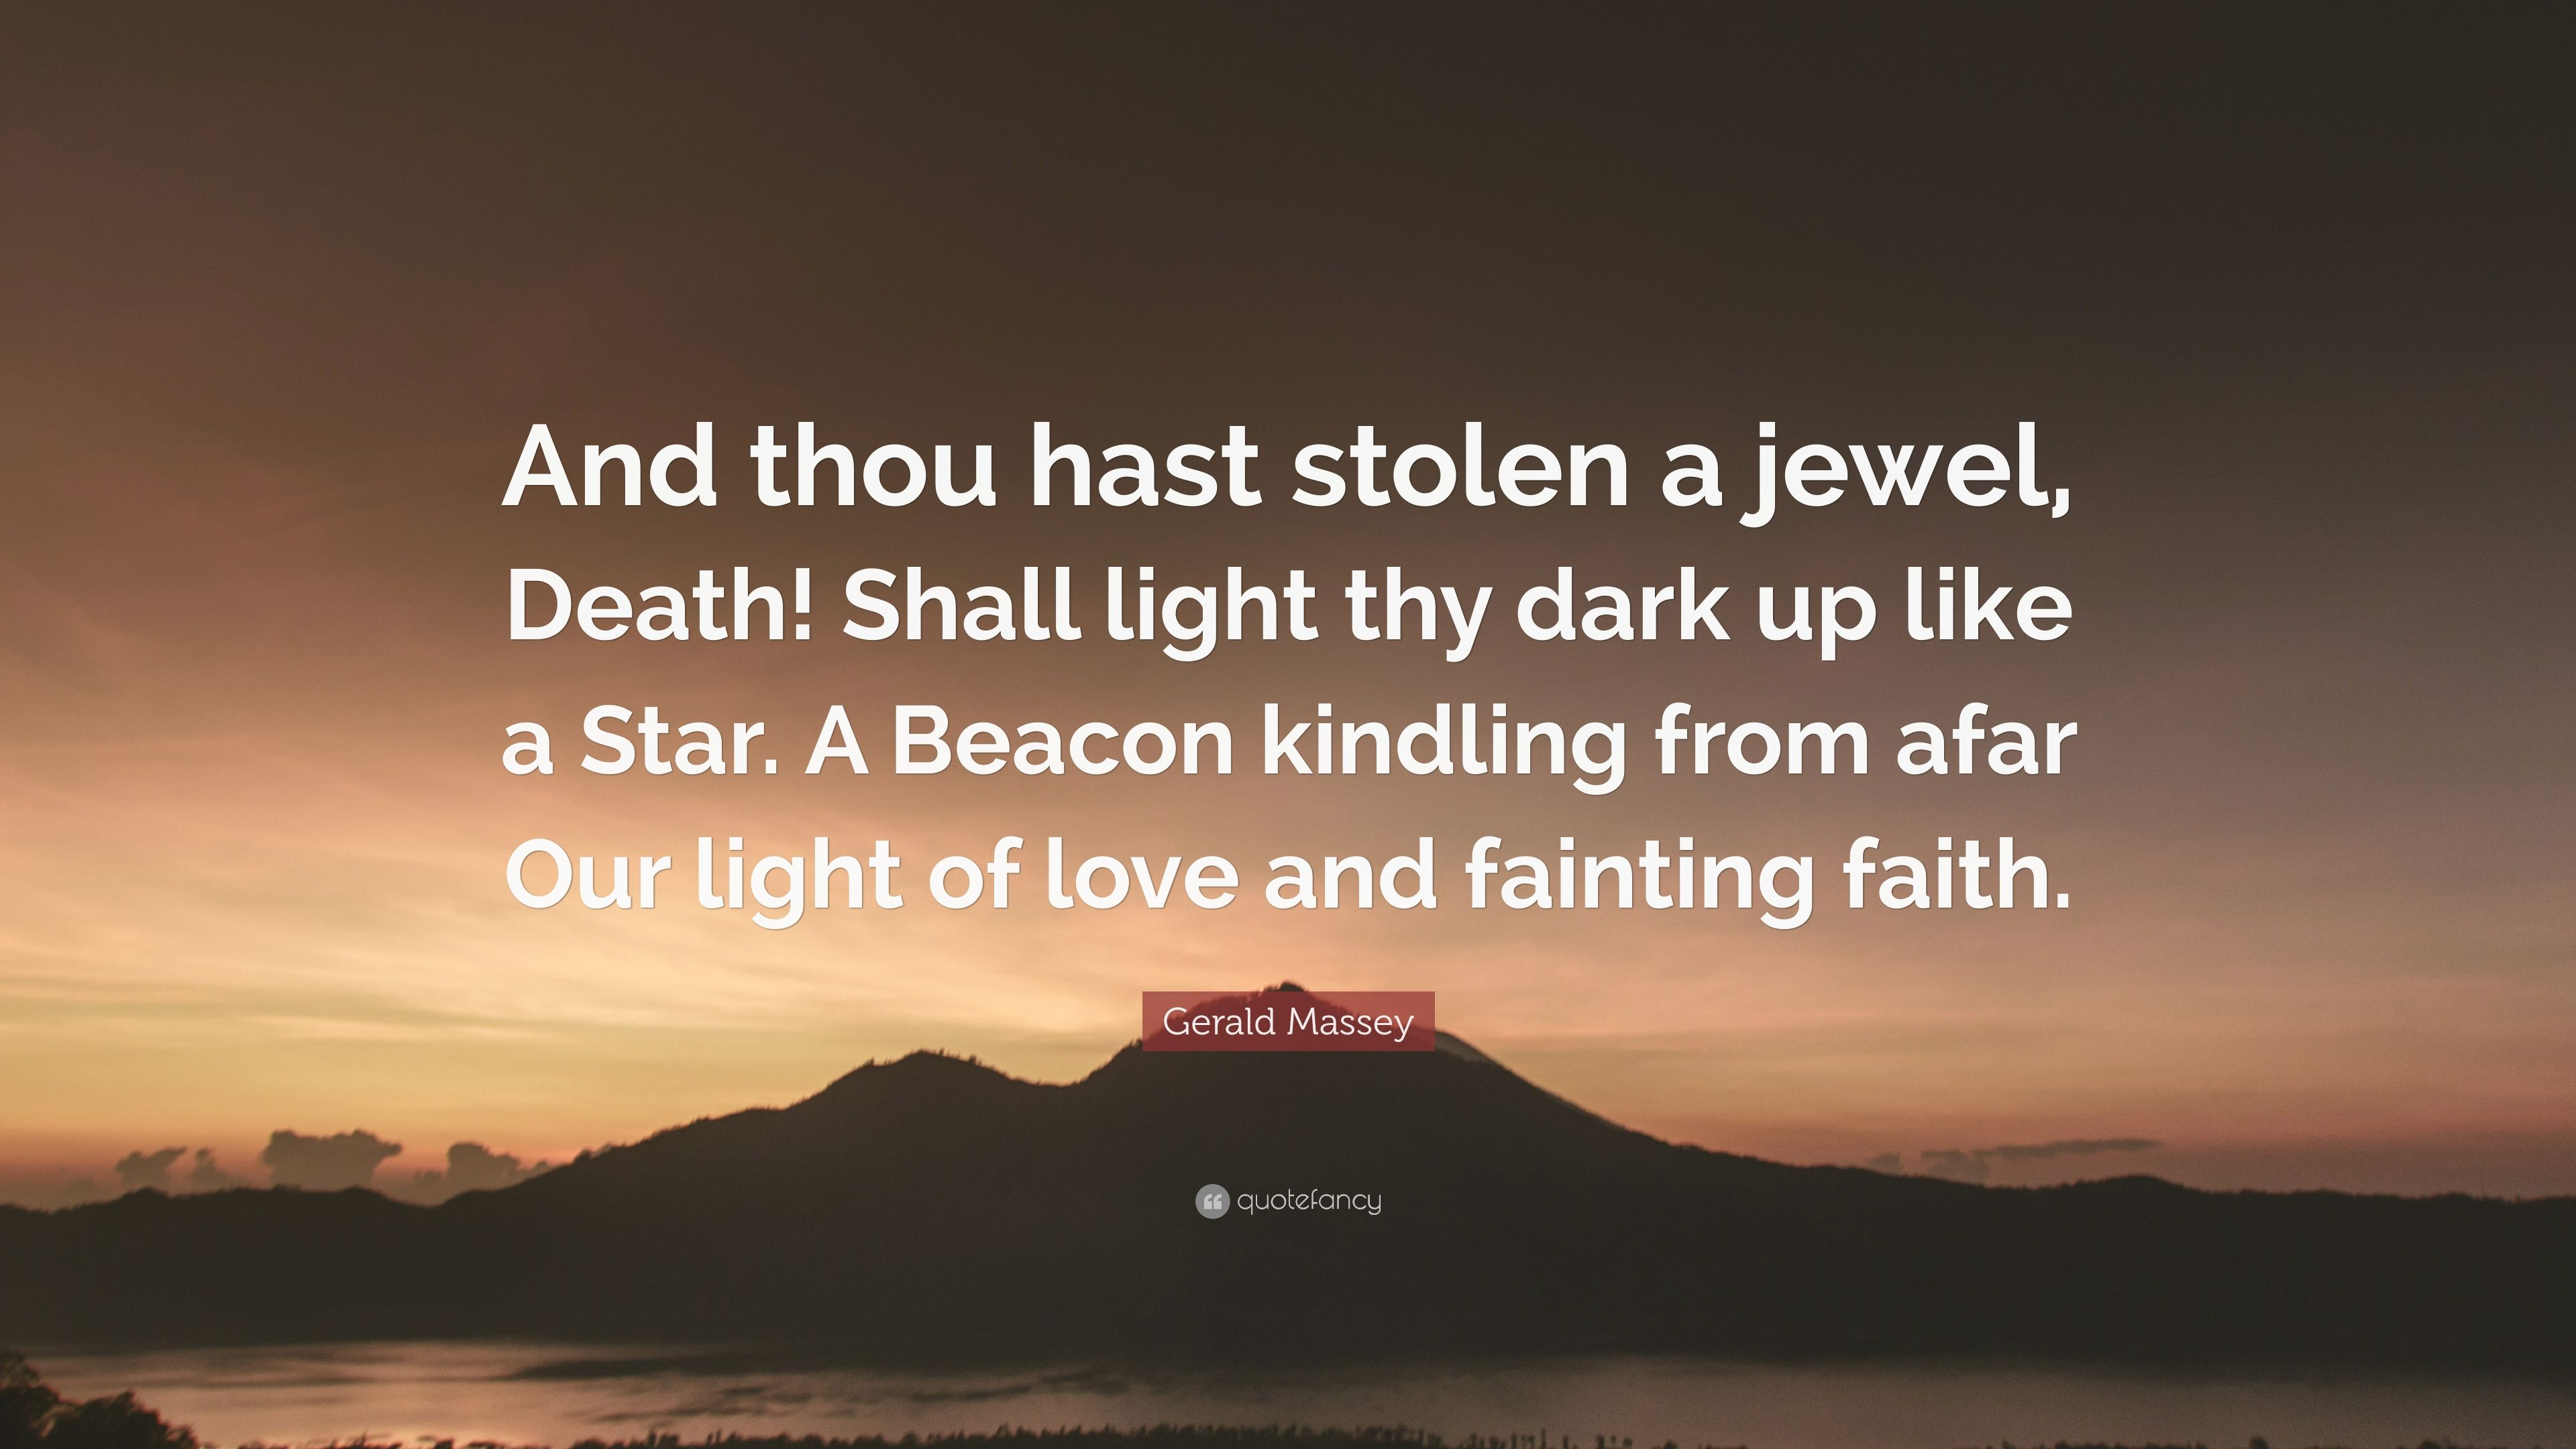 Gerald Massey Quote And Thou Hast Stolen A Jewel Death Shall